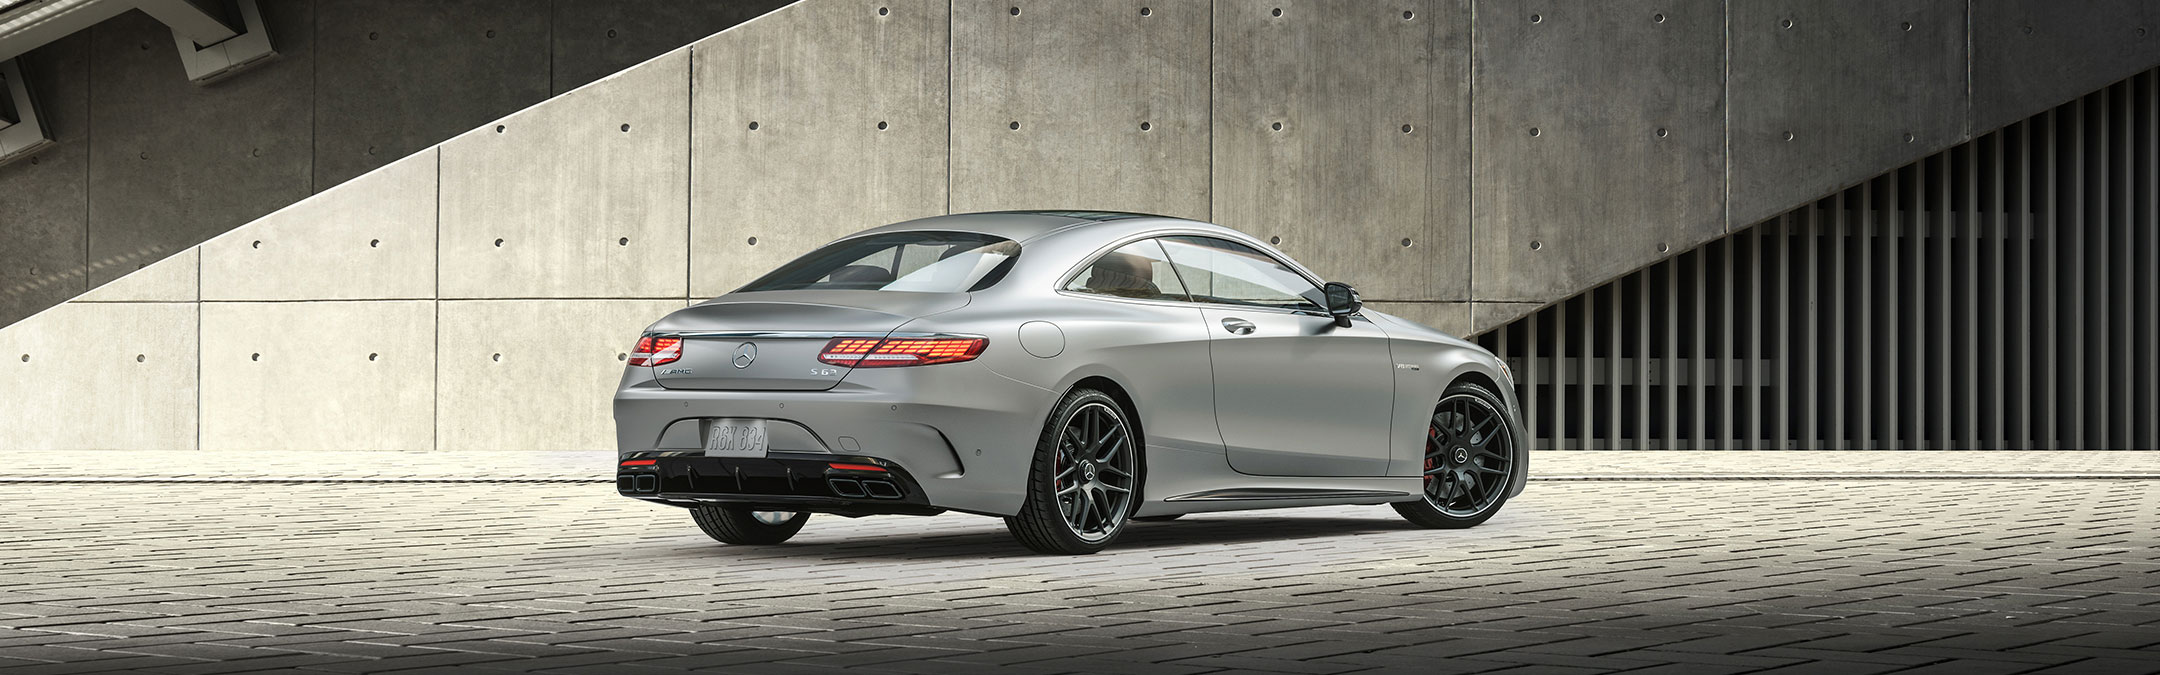 2018 Mercedes-AMG S-Class Coupe